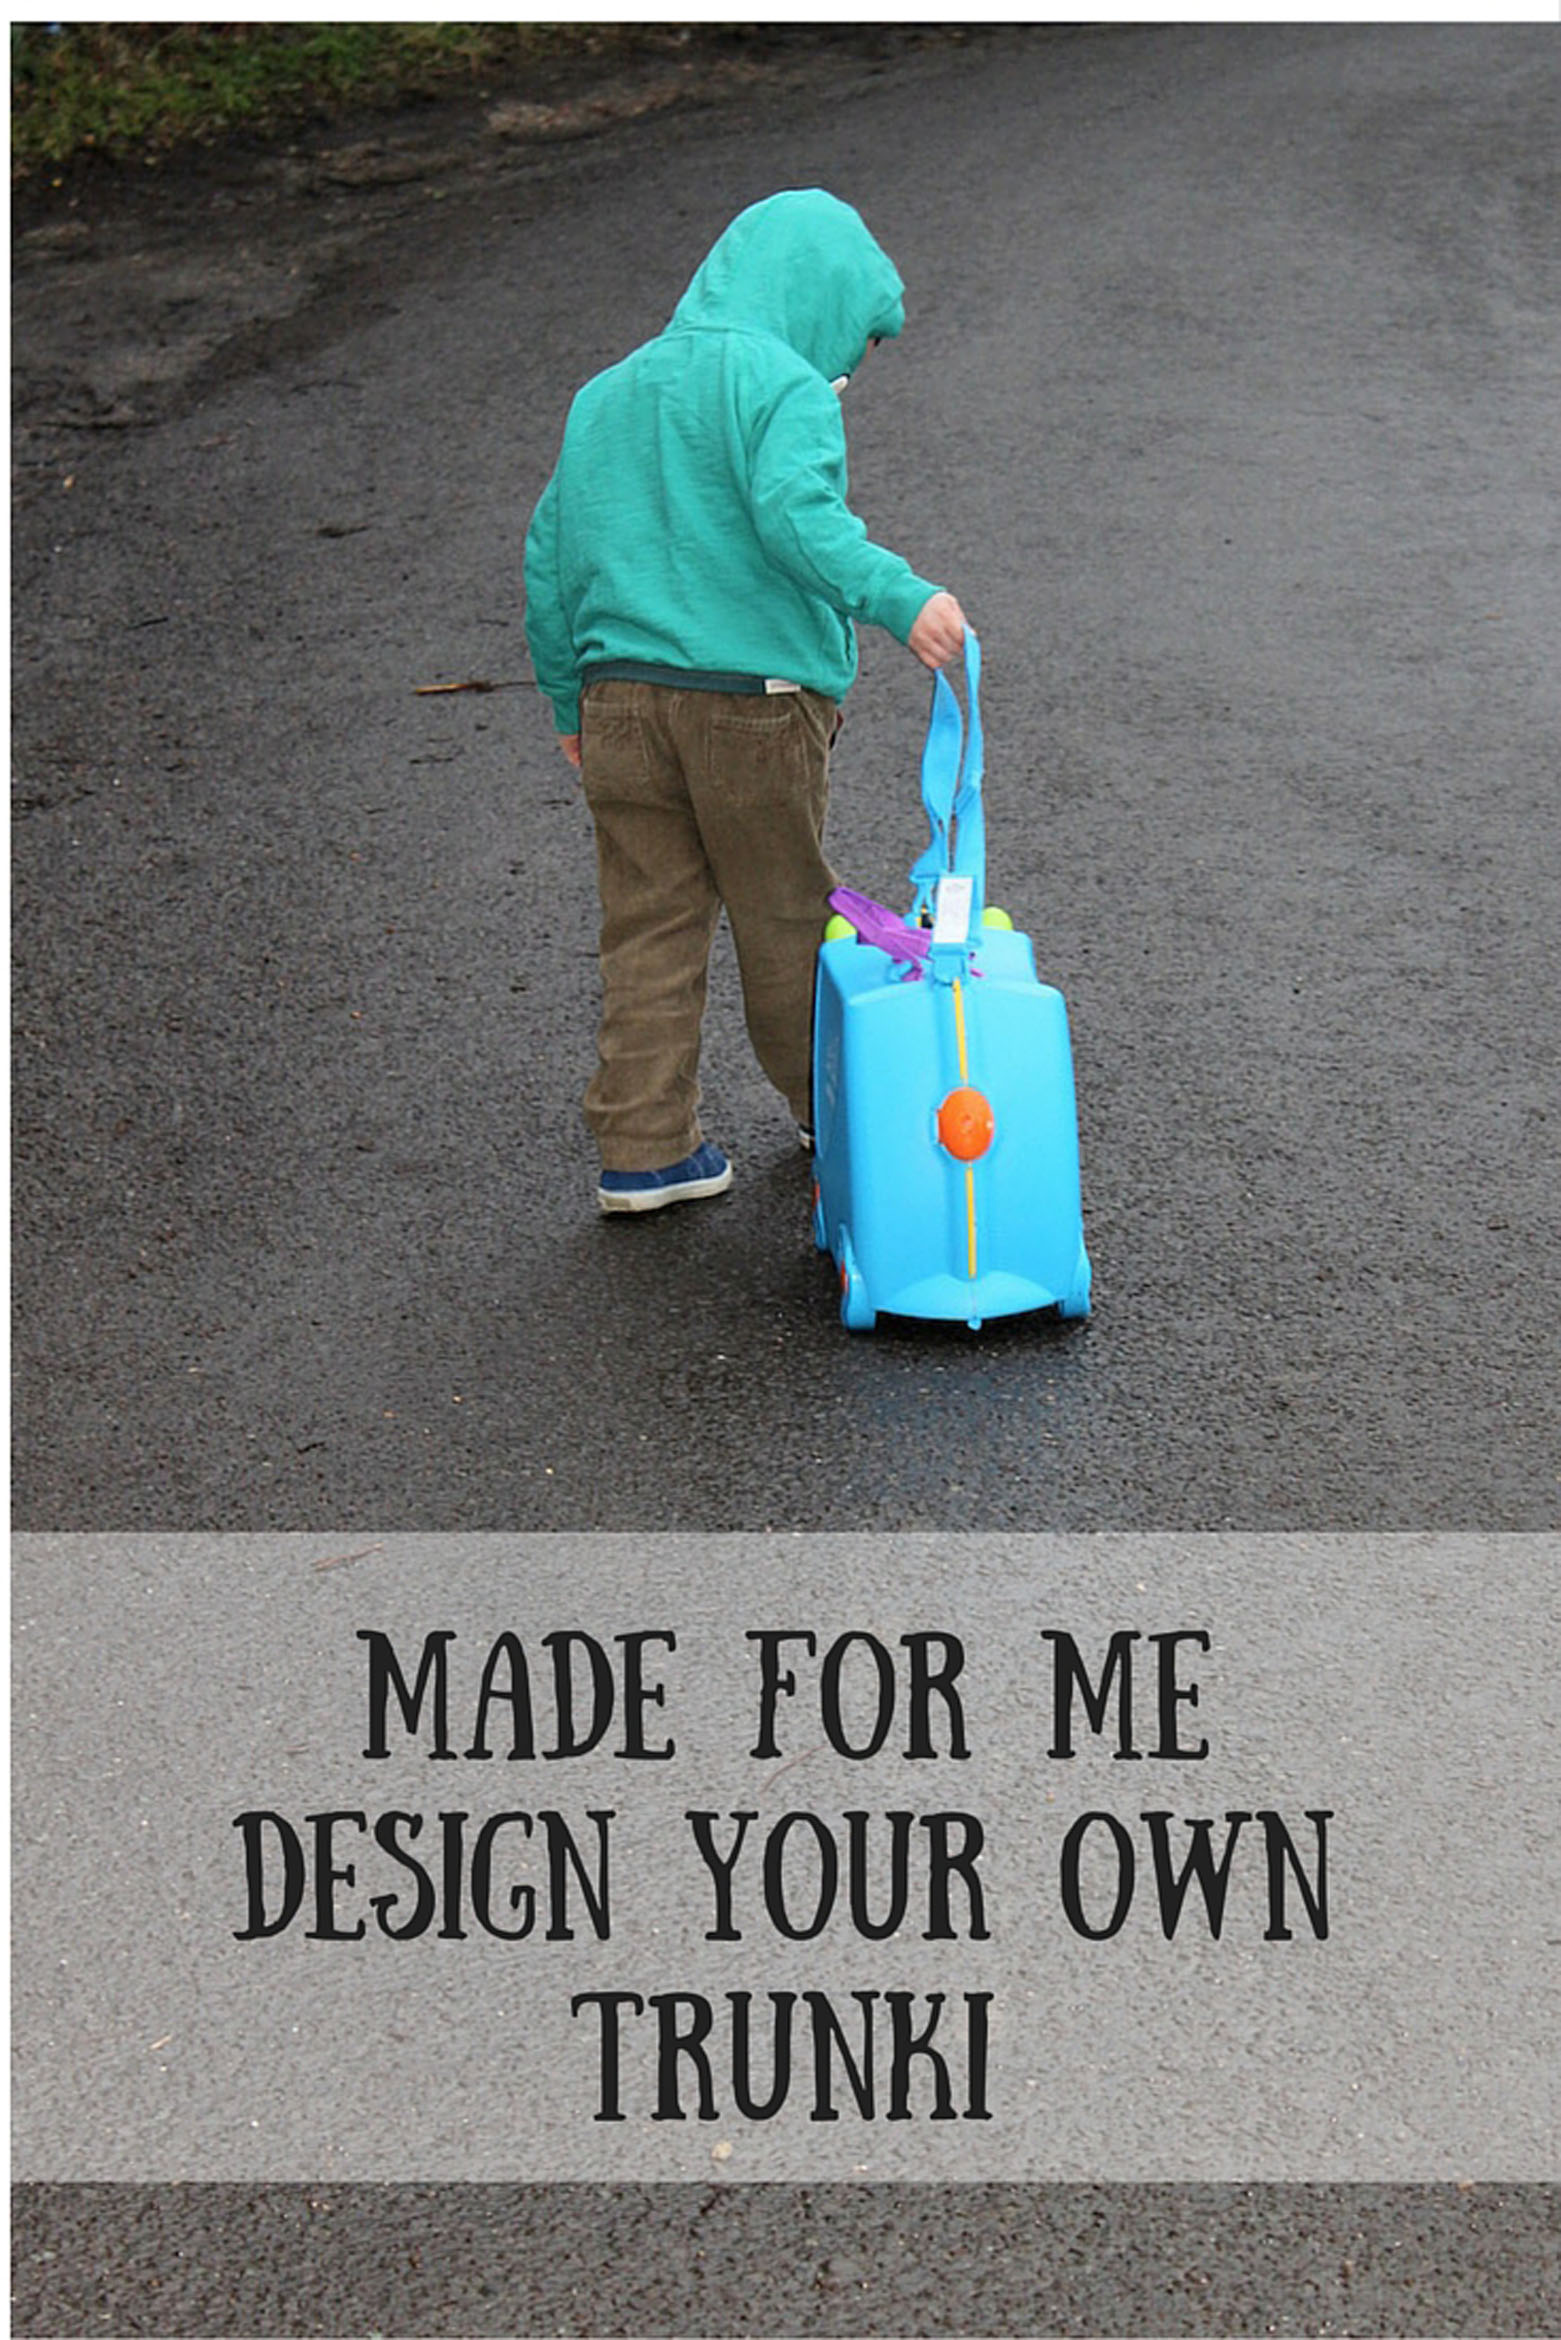 Made for MeDesign your own Trunki